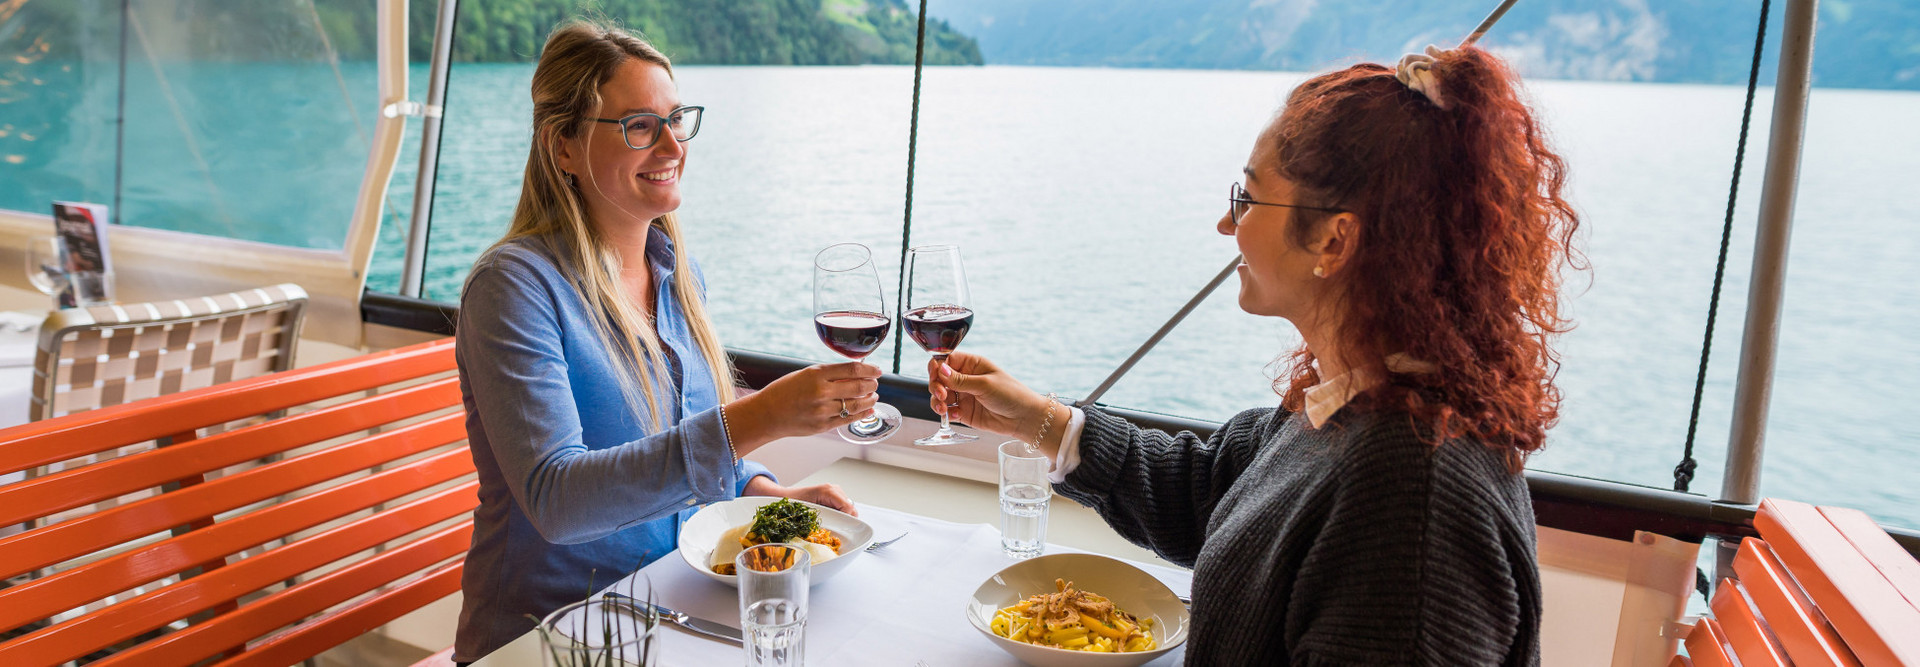 Guests are clinking their wine glasses during lunch